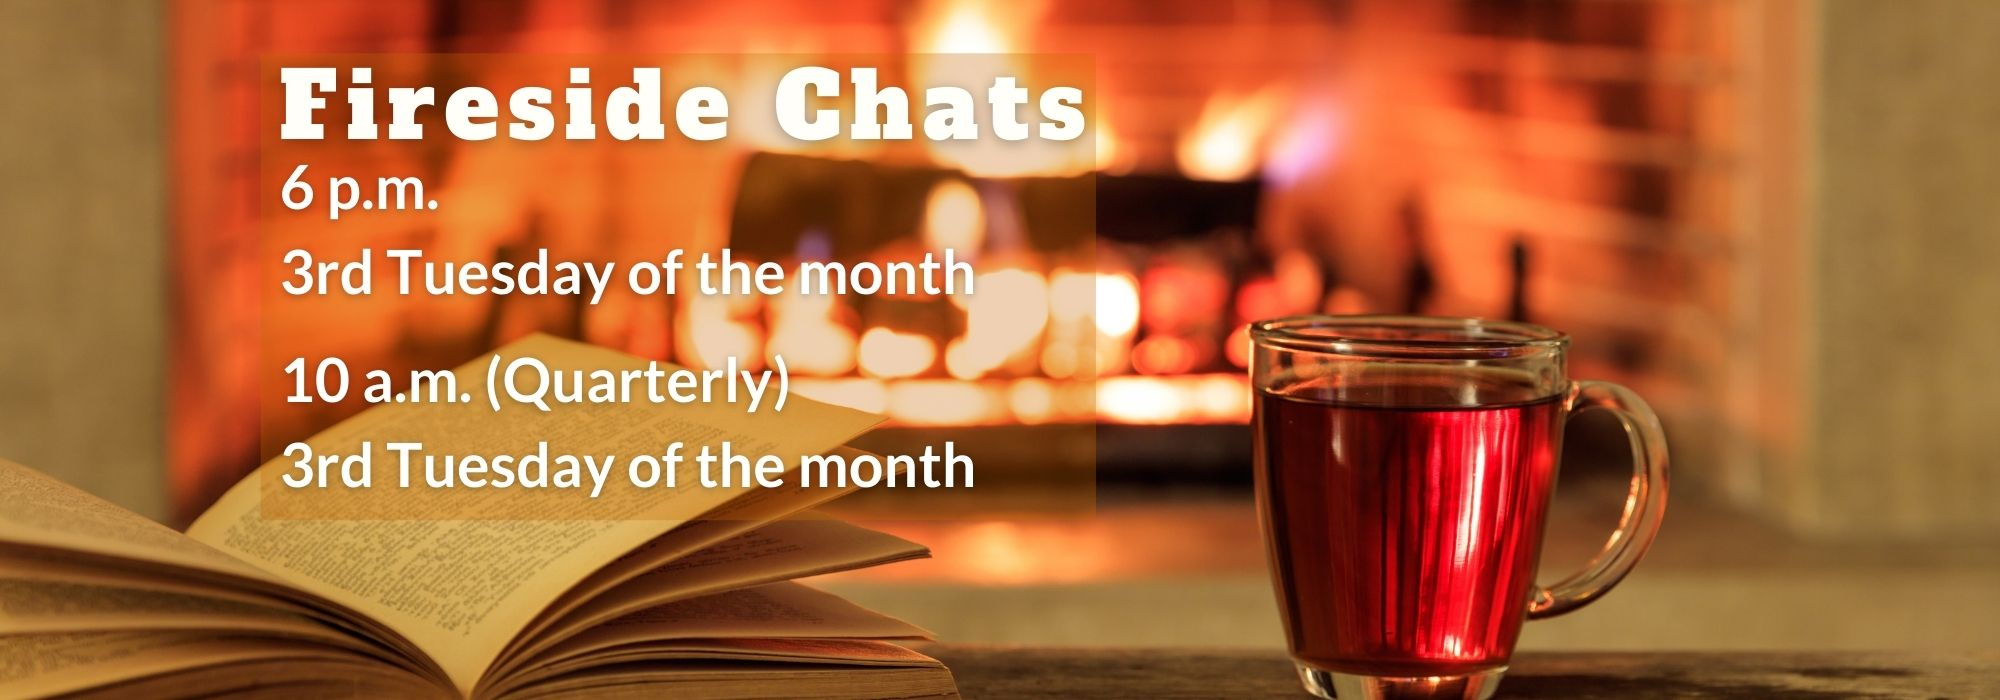 Fireside Chats, 10 am and 6 pm, third Tuesday of the month